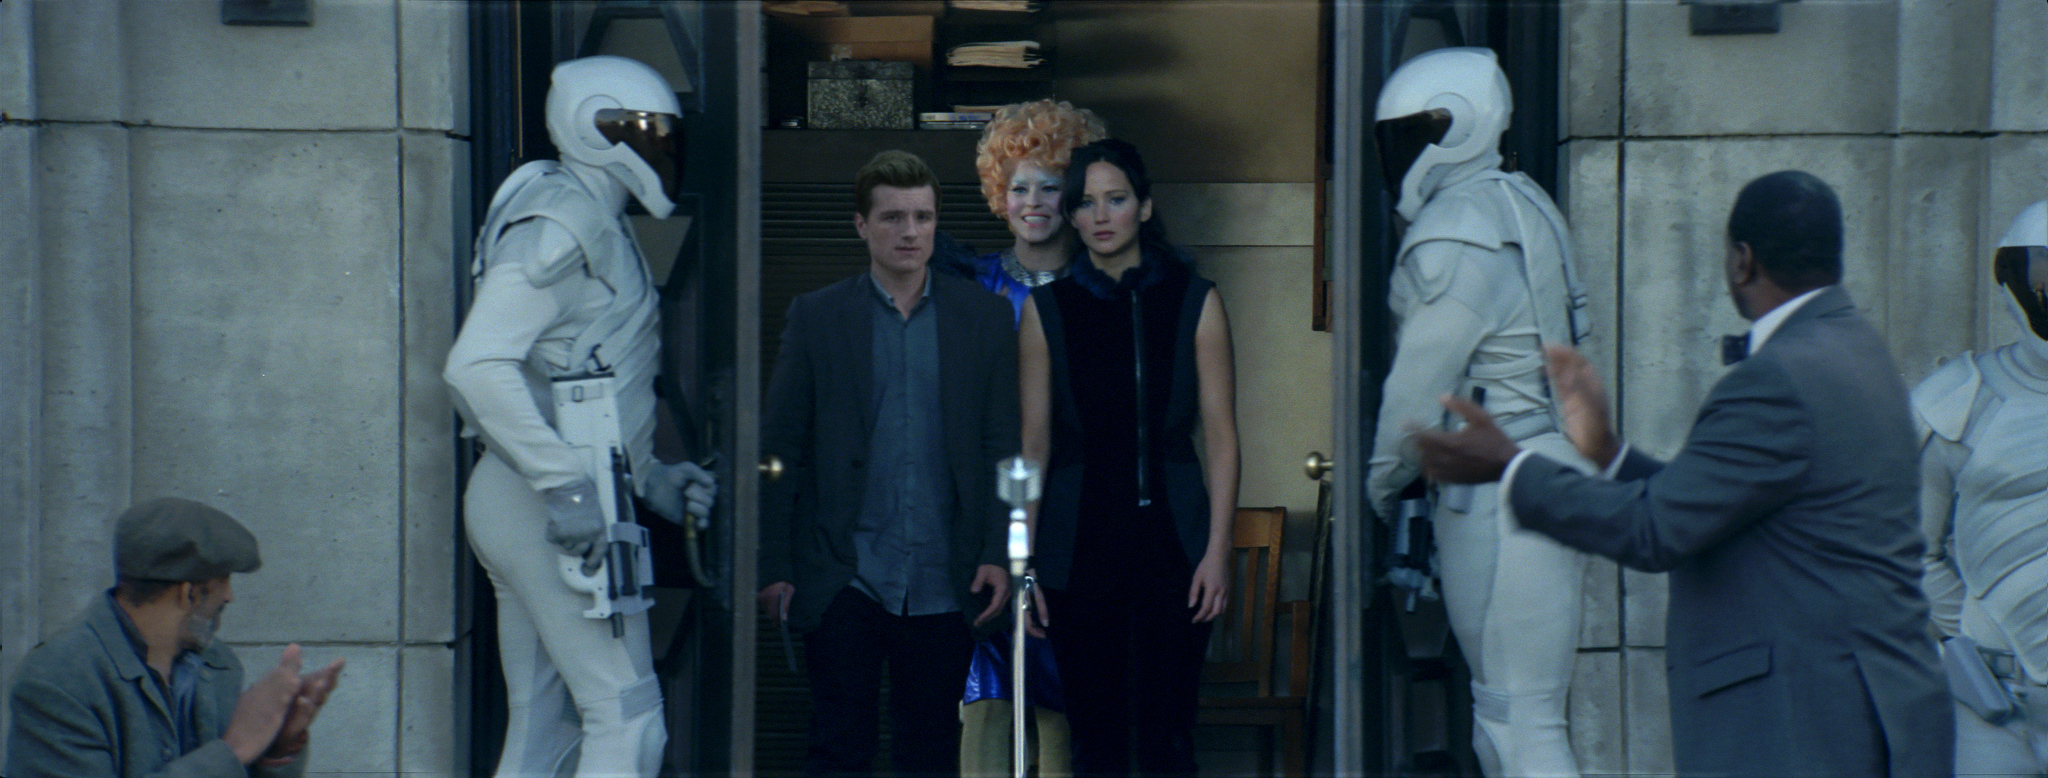 hgcf 01.000001 06951 Final Catching Fire Victors Banner Unveiled on The Hunger Games Explorer